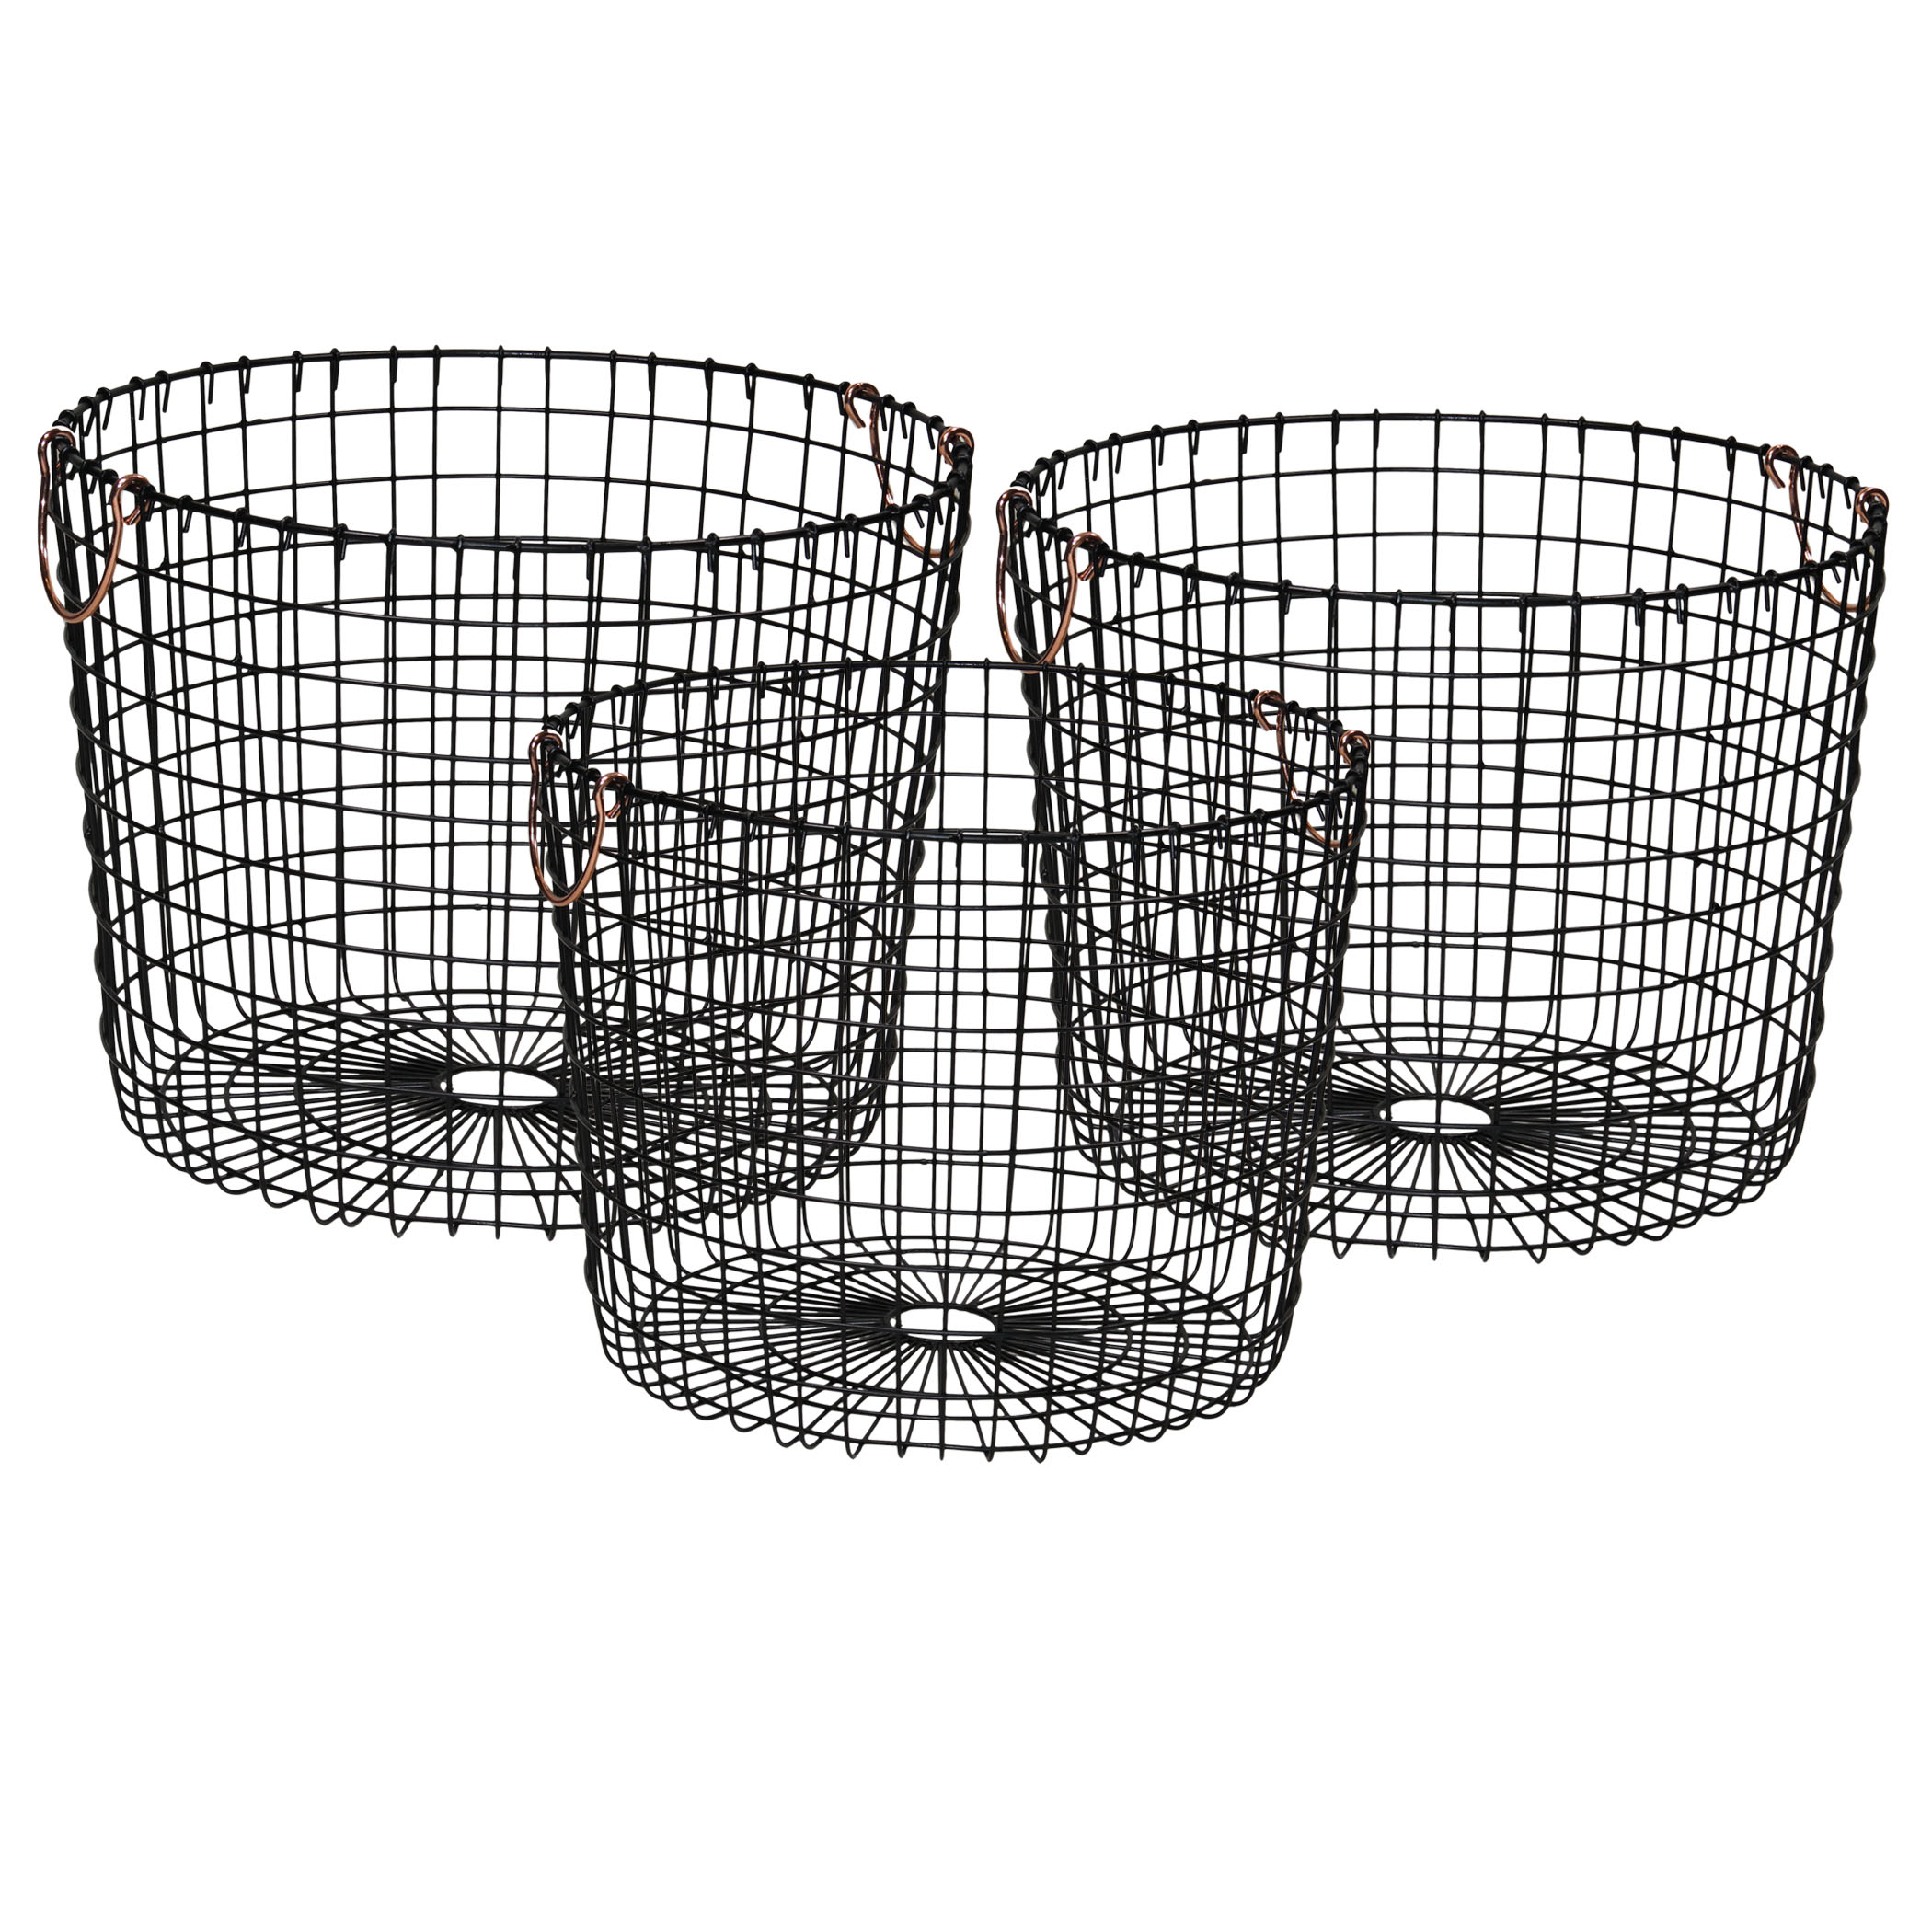 Mainstays Round Open Weave Metal Wire Baskets with Handles